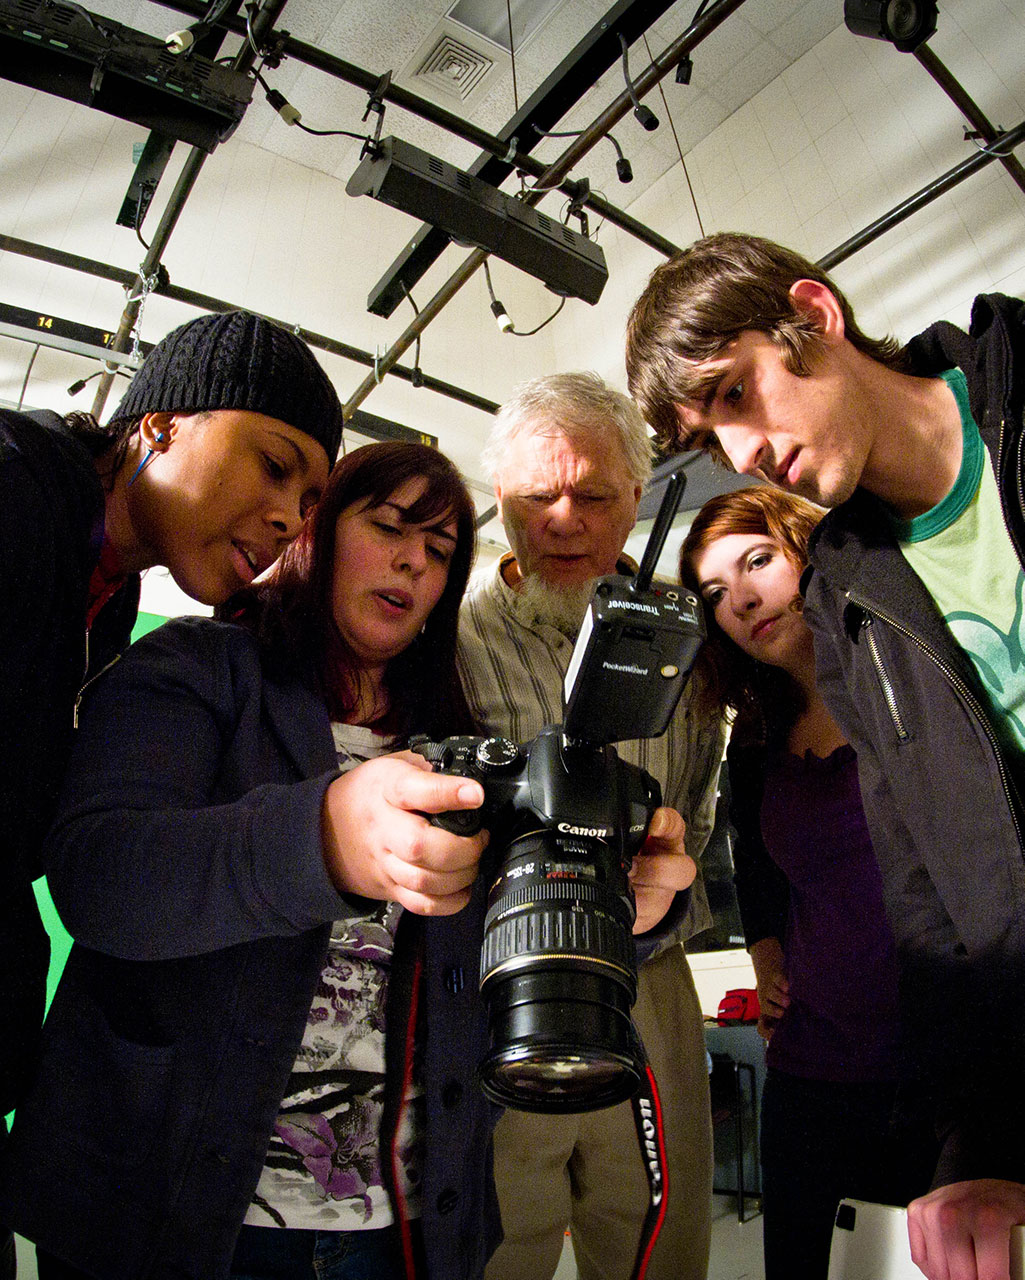 Media Design Students learning photography at Wilmington University